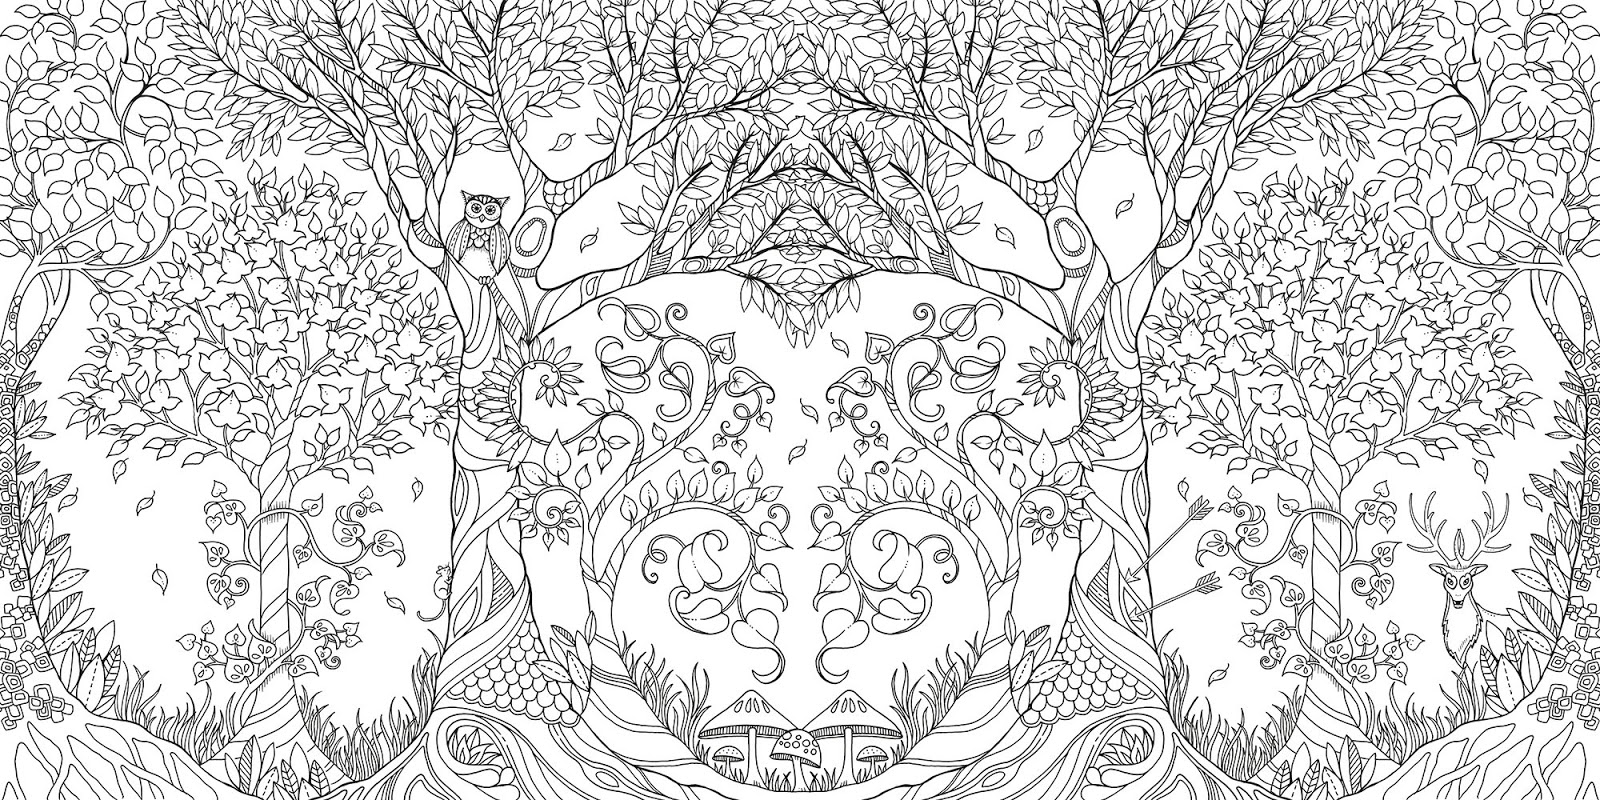 Wildlife habitat in backyard black and white clipart banner royalty free stock Grown Up Coloring Books Are Here! - The Backyard Naturalist banner royalty free stock